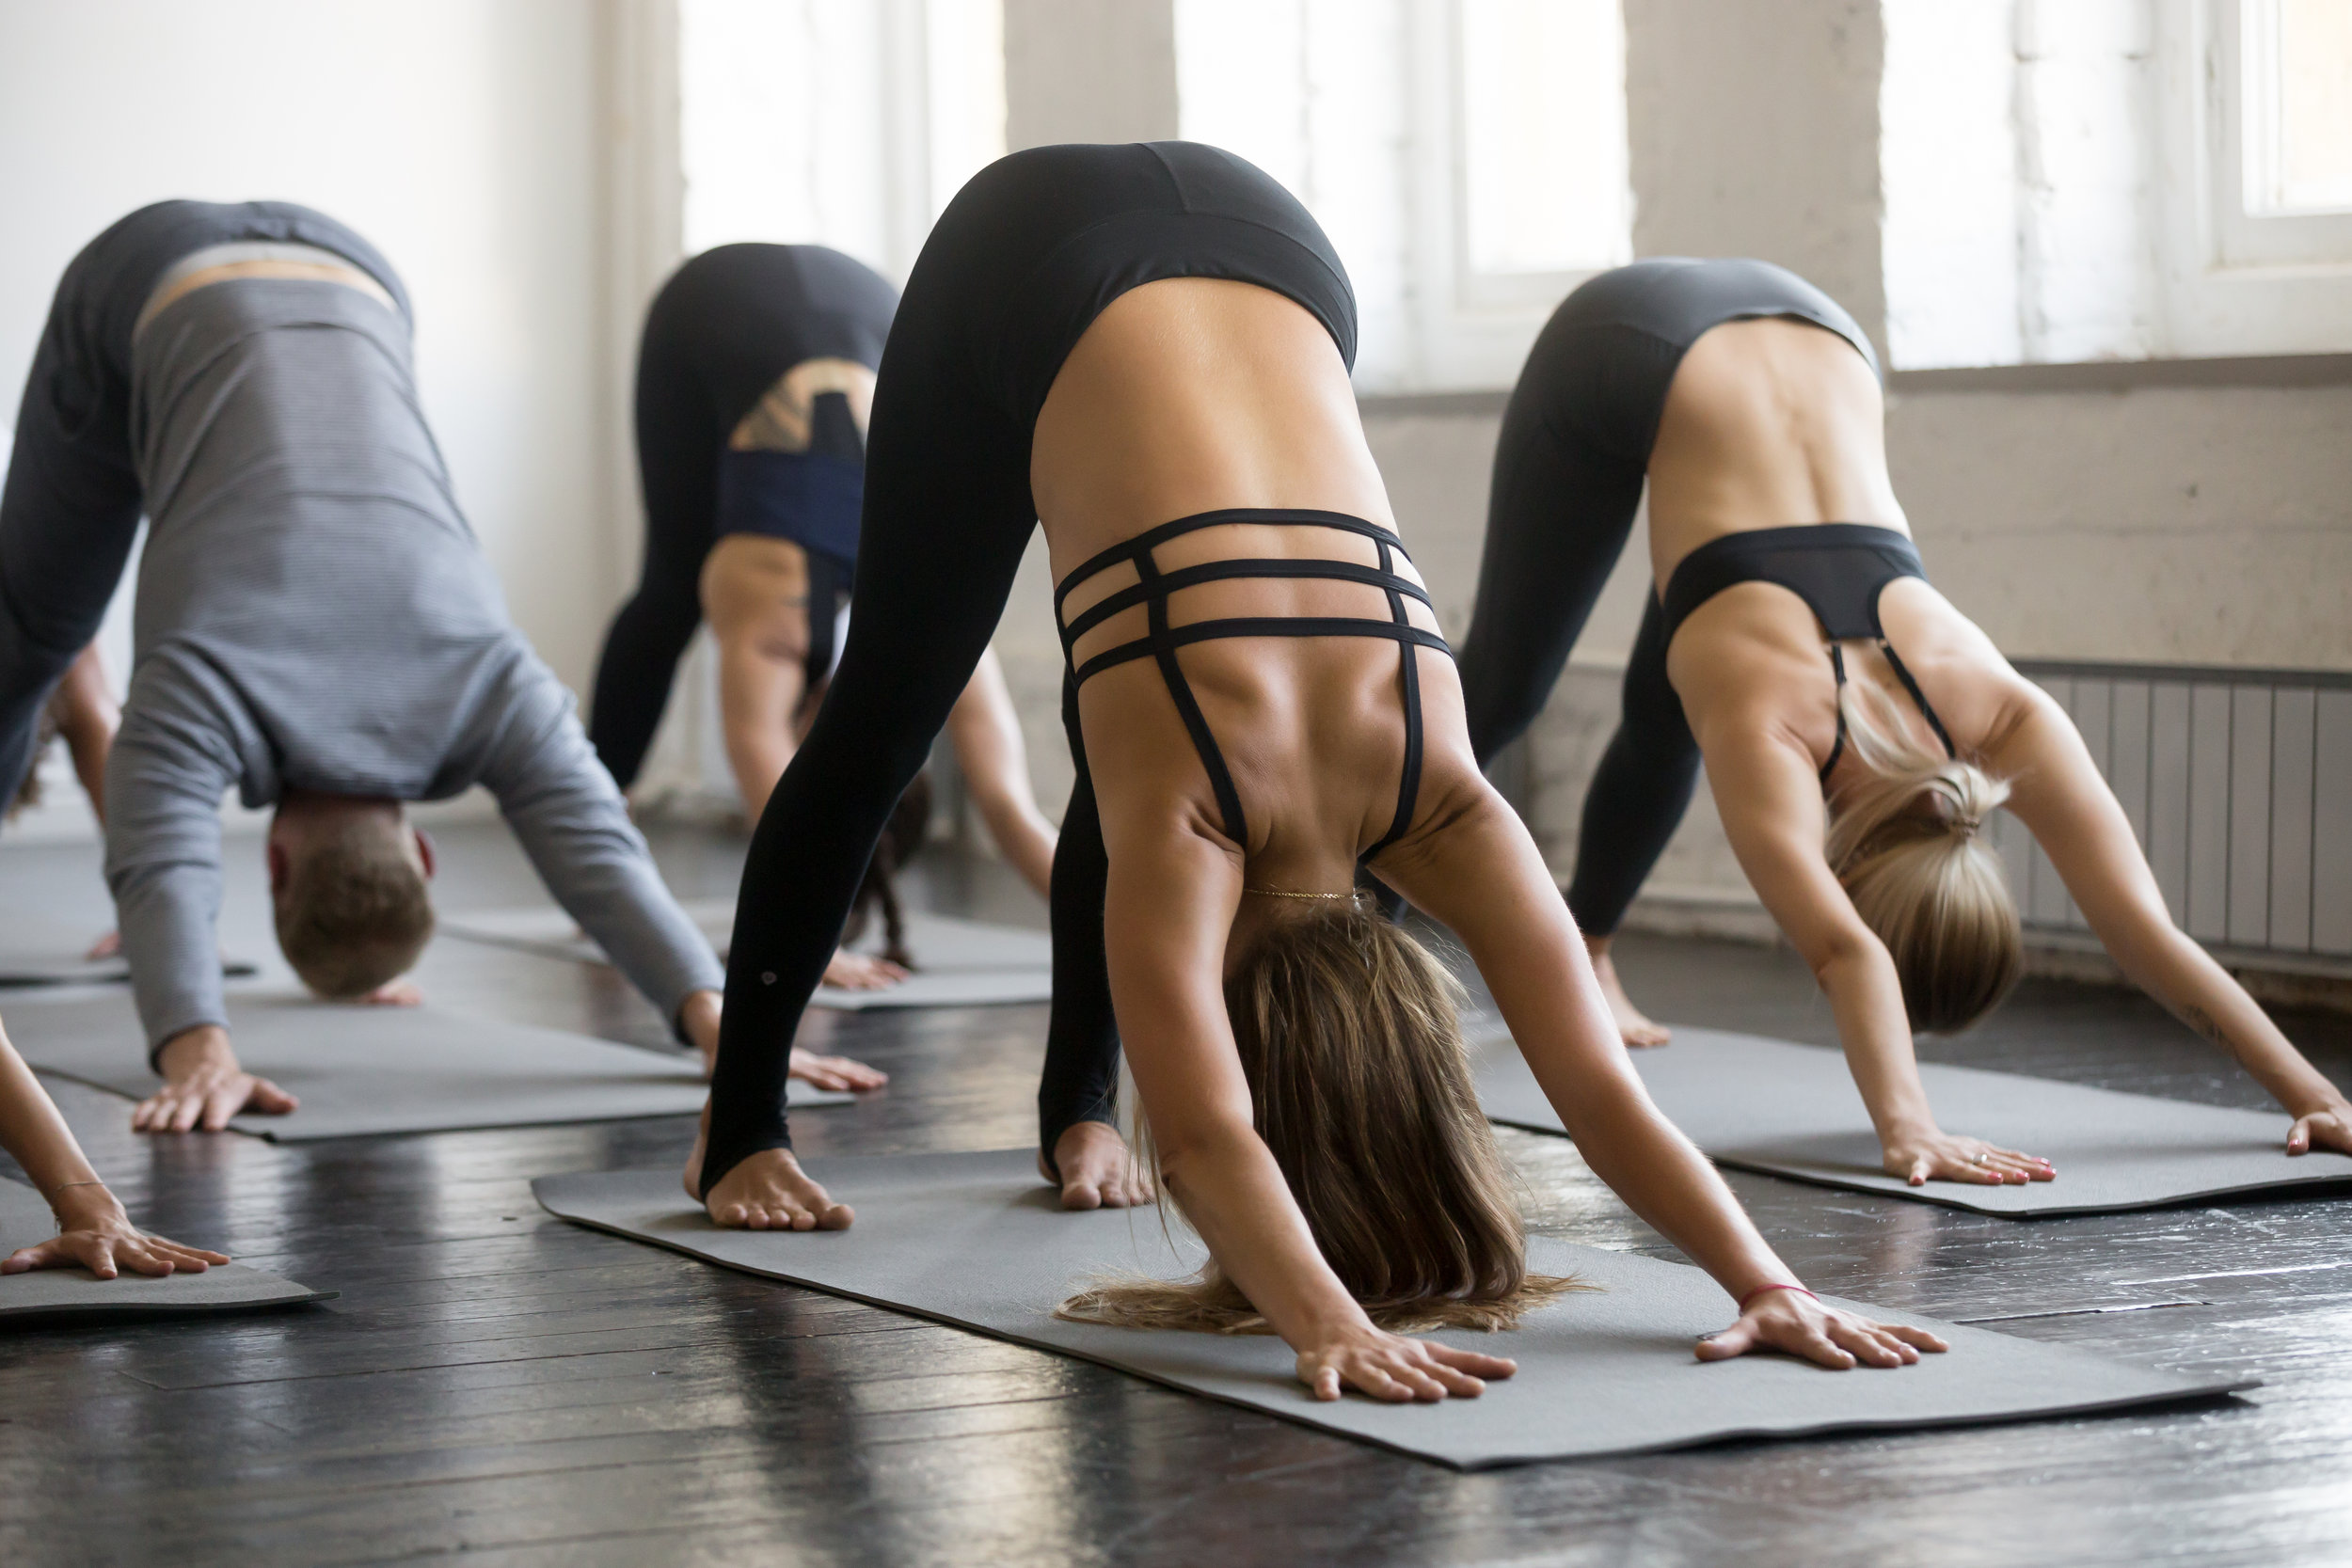 Group Yoga Image.jpg